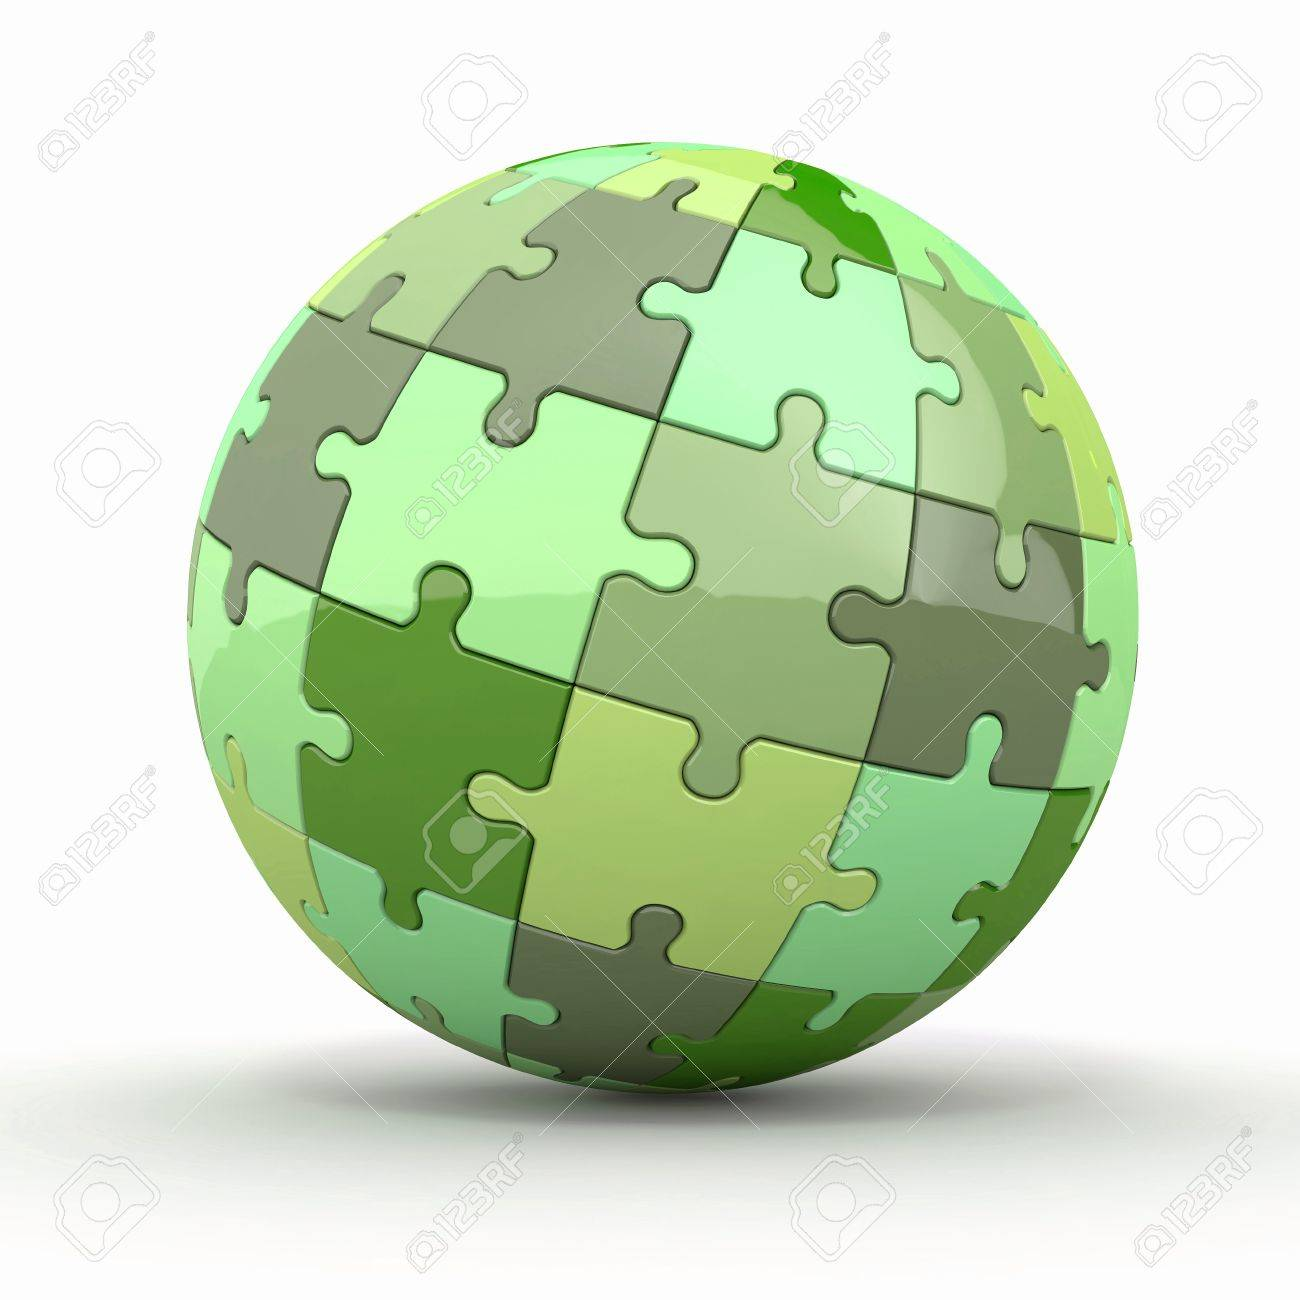 Globe or sphere from puzzles on white background  3d Stock Photo - 15260694